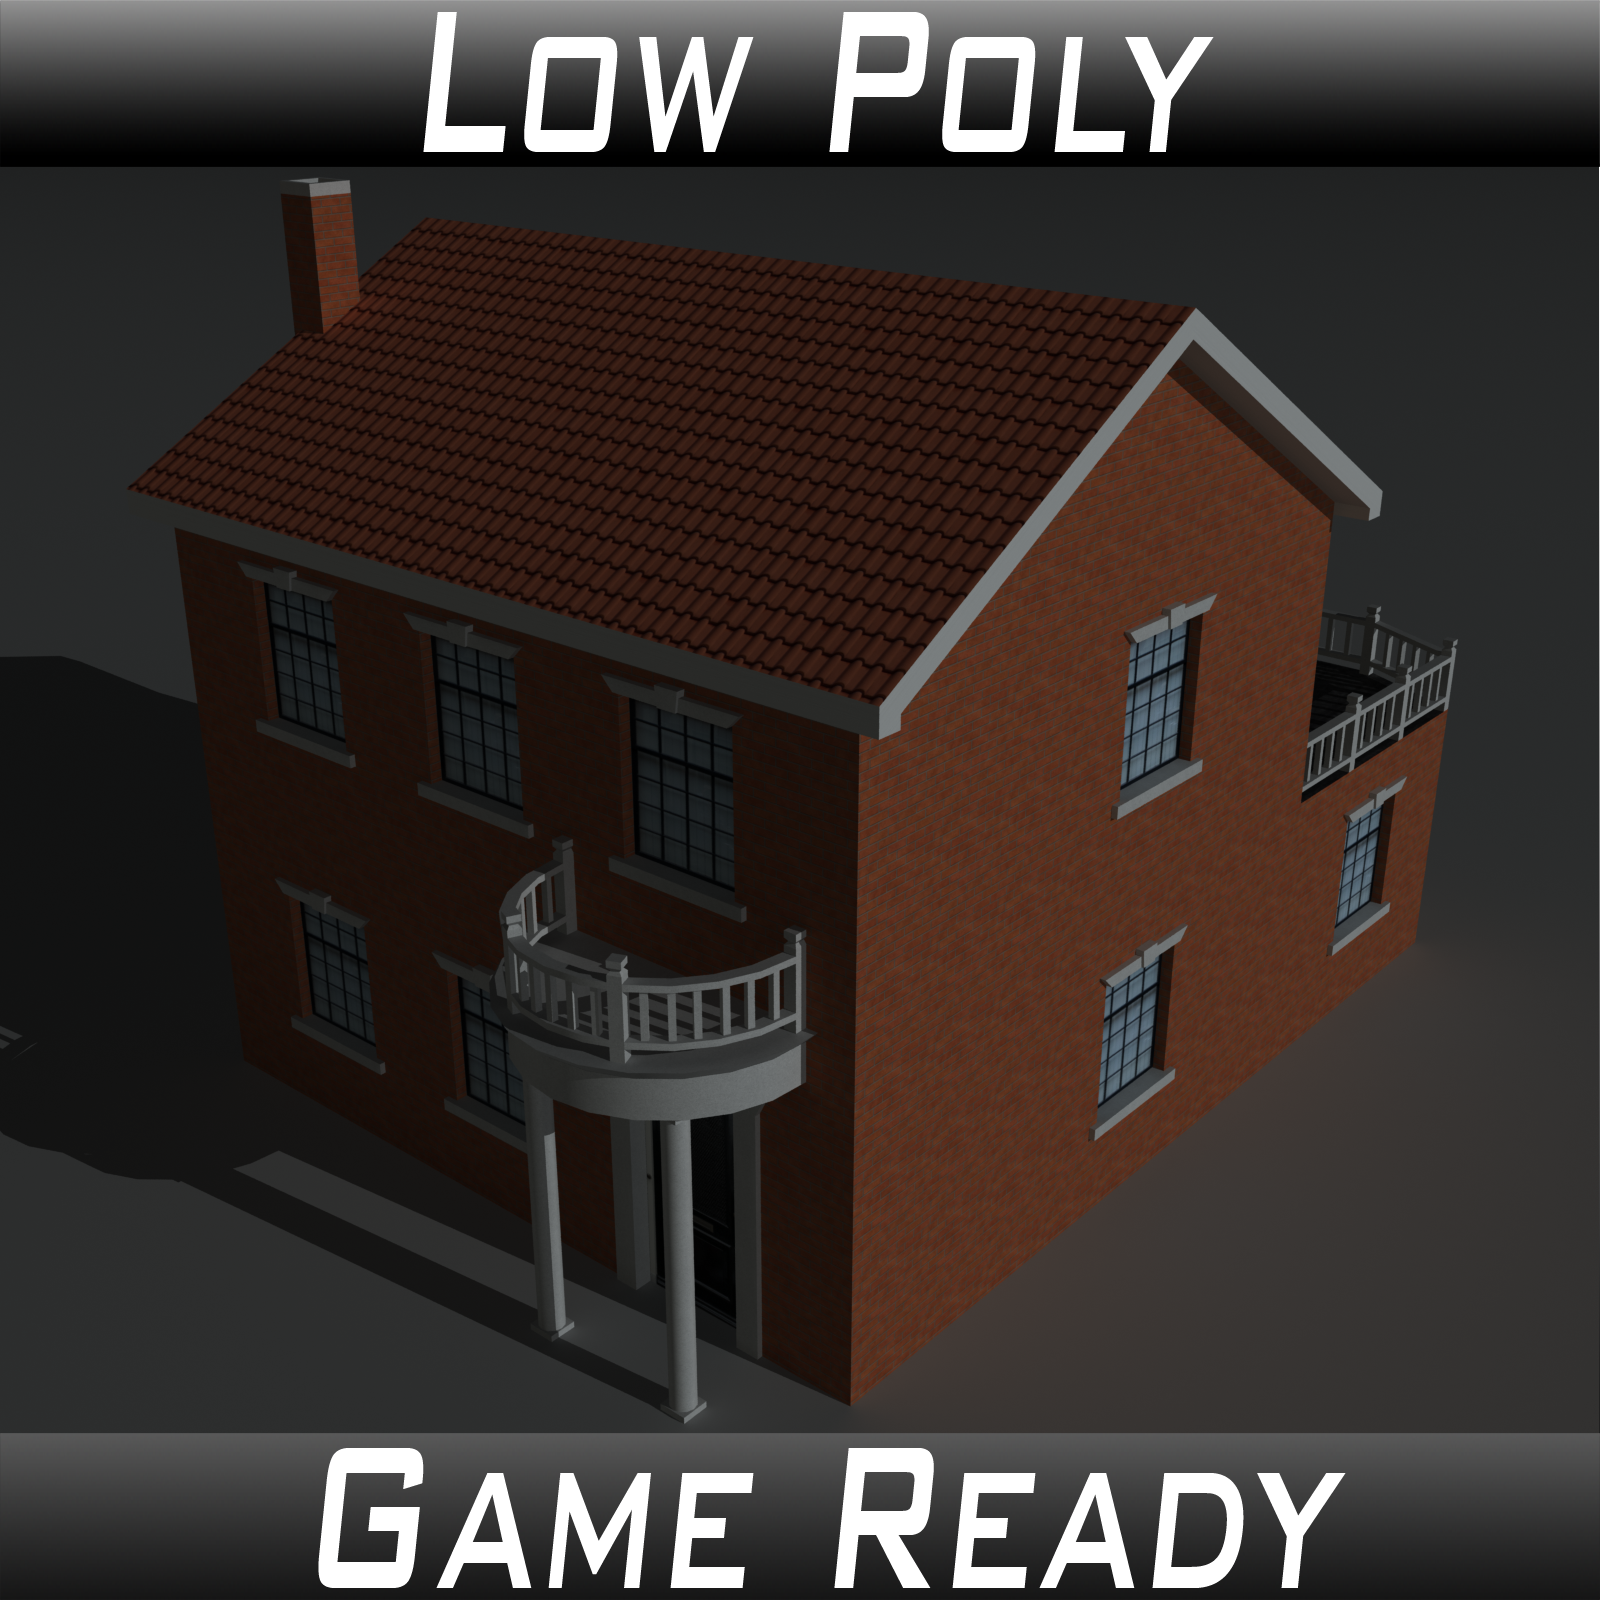 Low Poly House 9 - Extended Licence